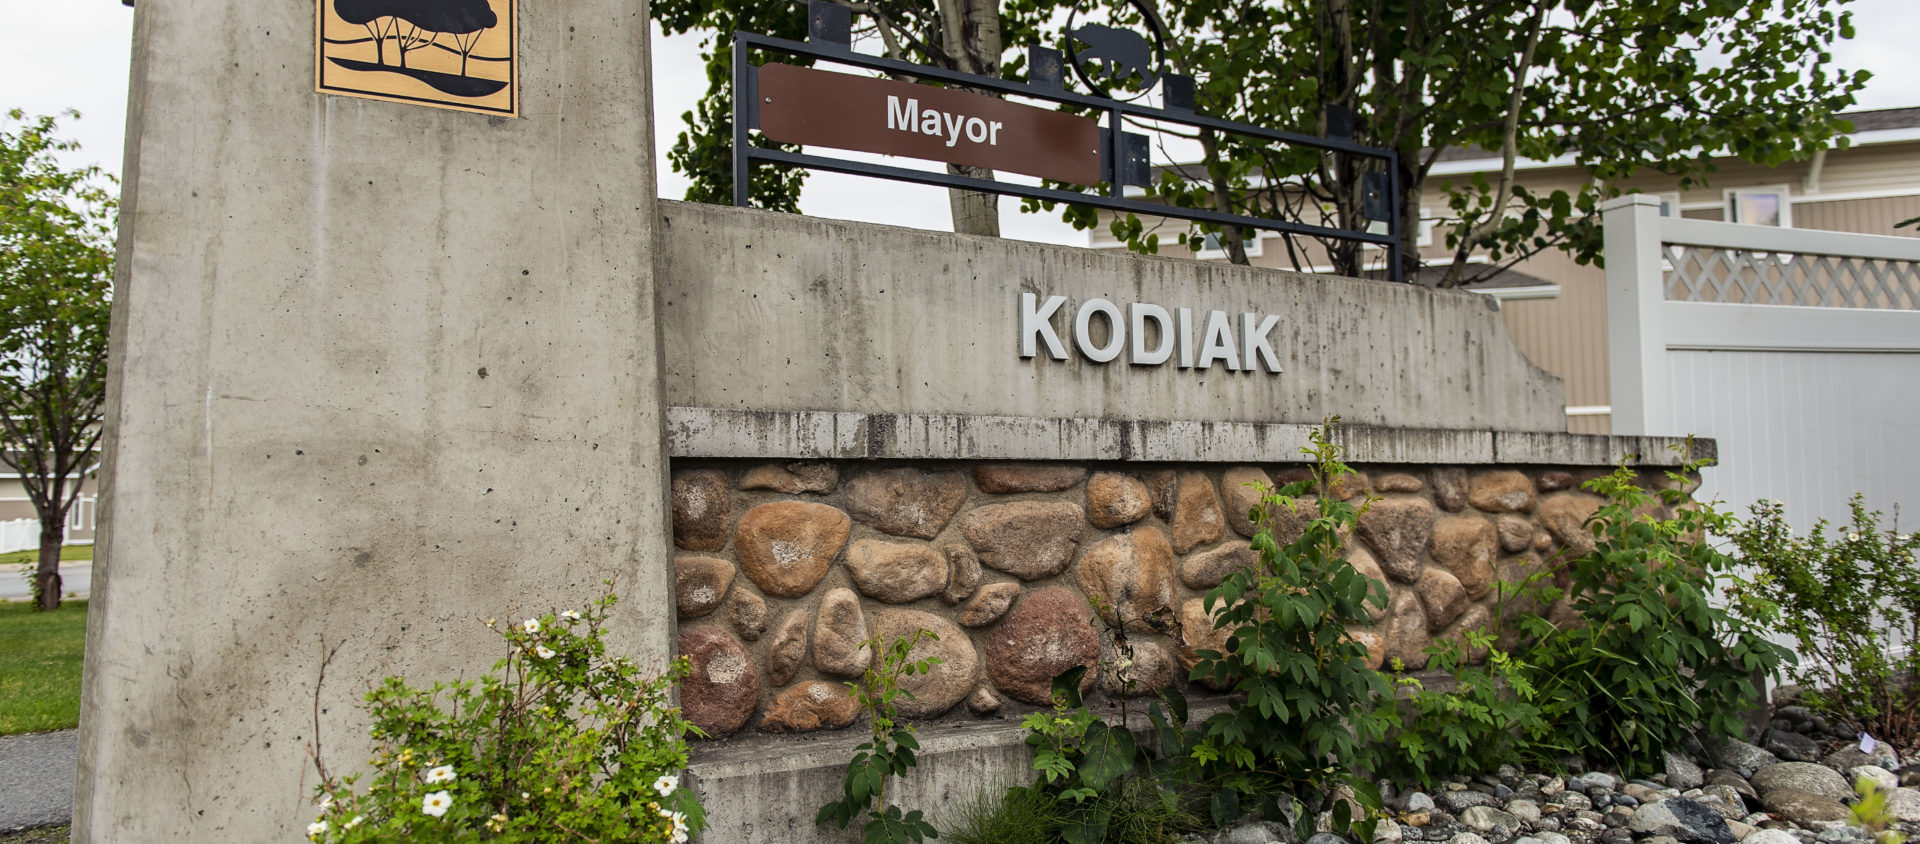 Kodiak neighborhood monument sign